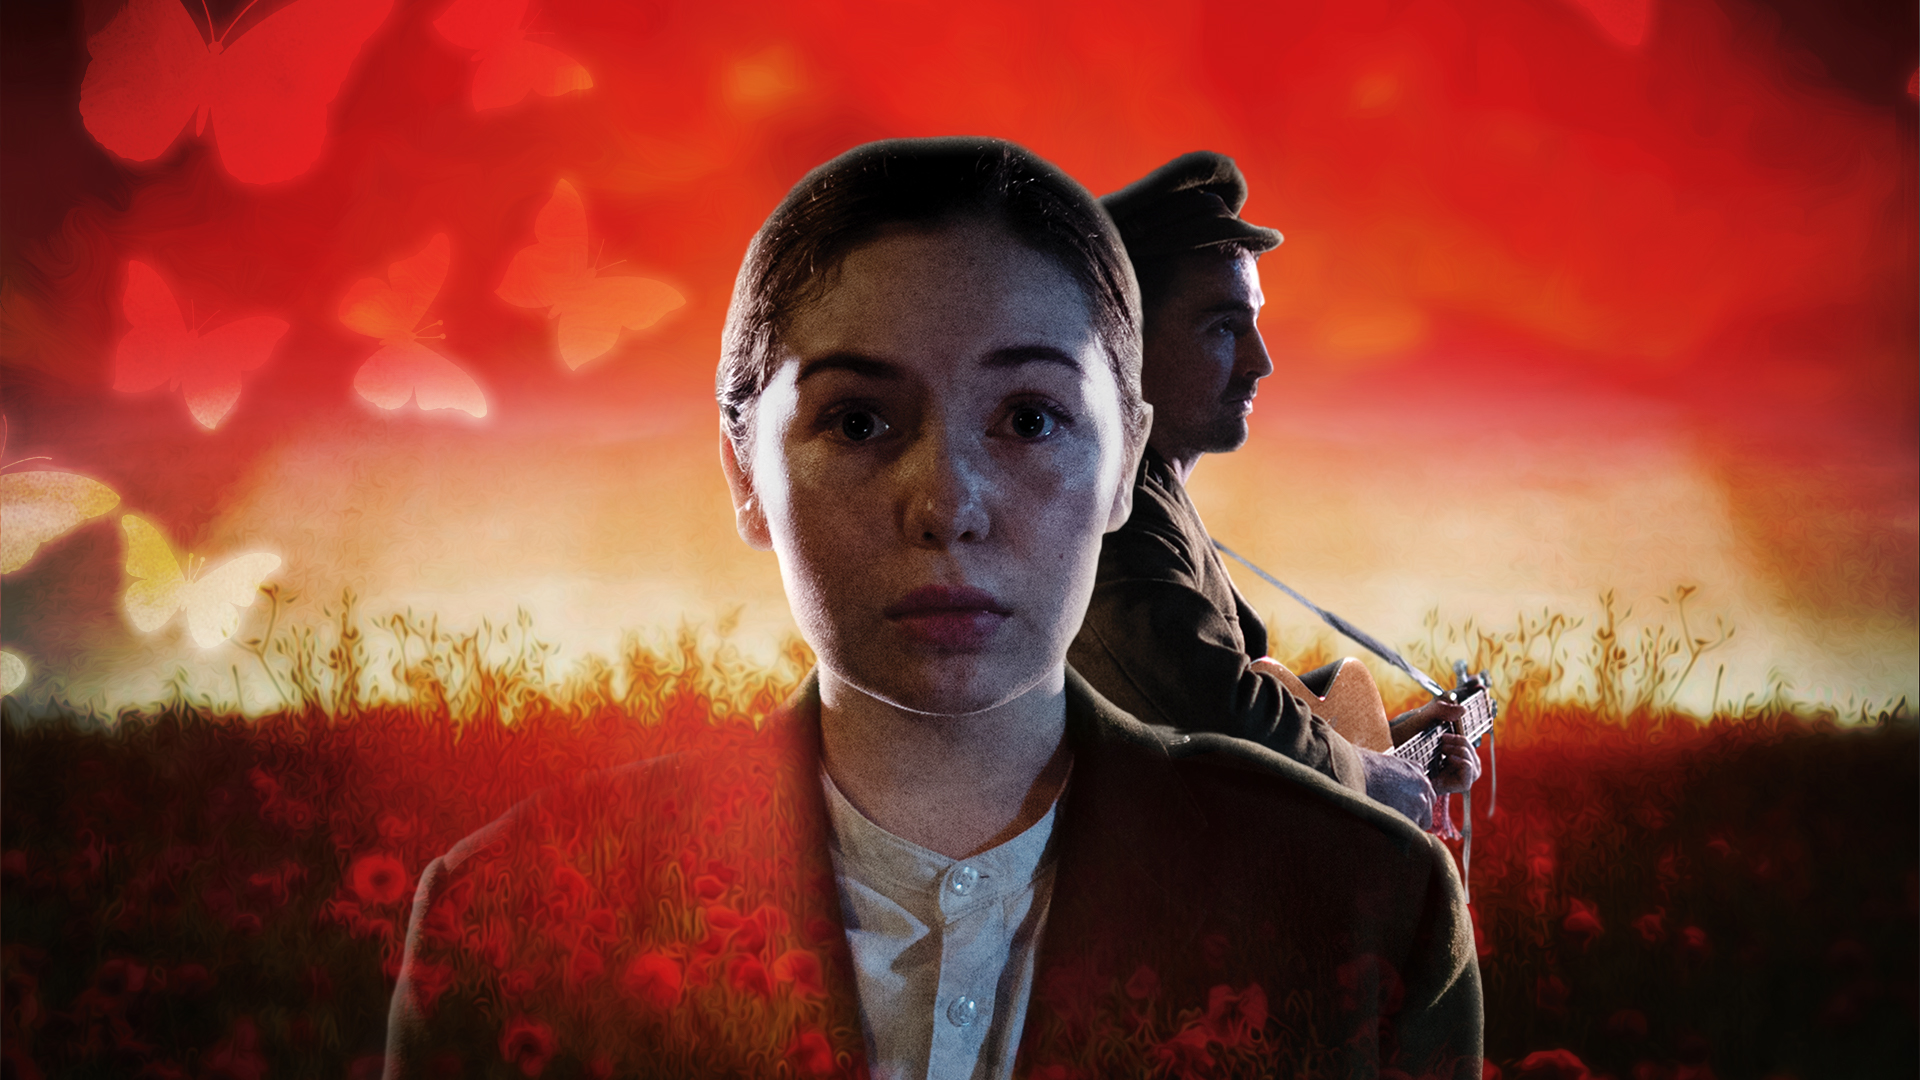 Private Peaceful promotional image - A child in the foreground, wide-eyed, the silhouet of a soldier against a bright red background behind them